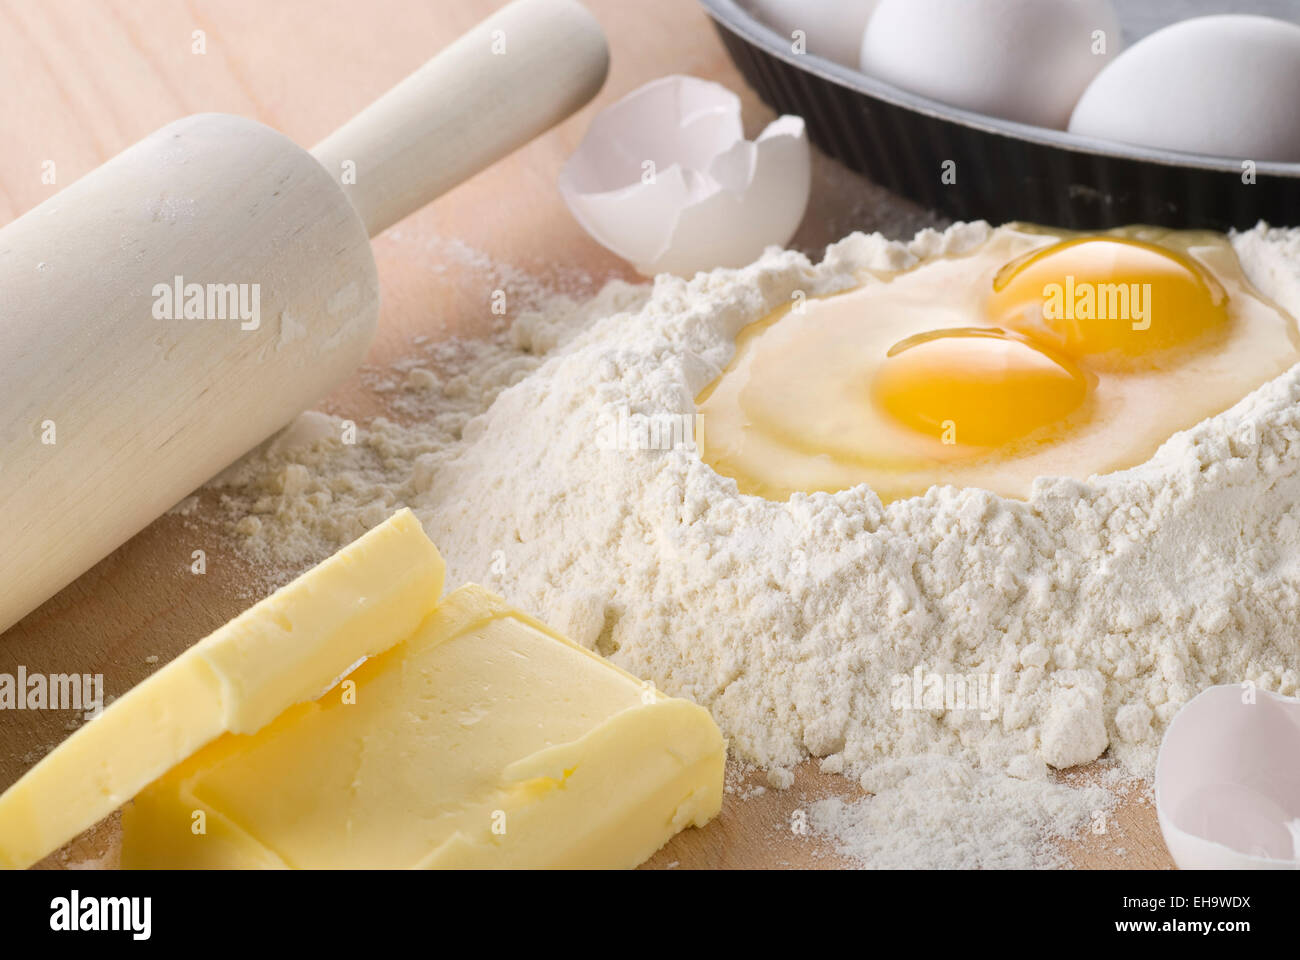 Baking ingredients. Flour, egg and butter. - Stock Image